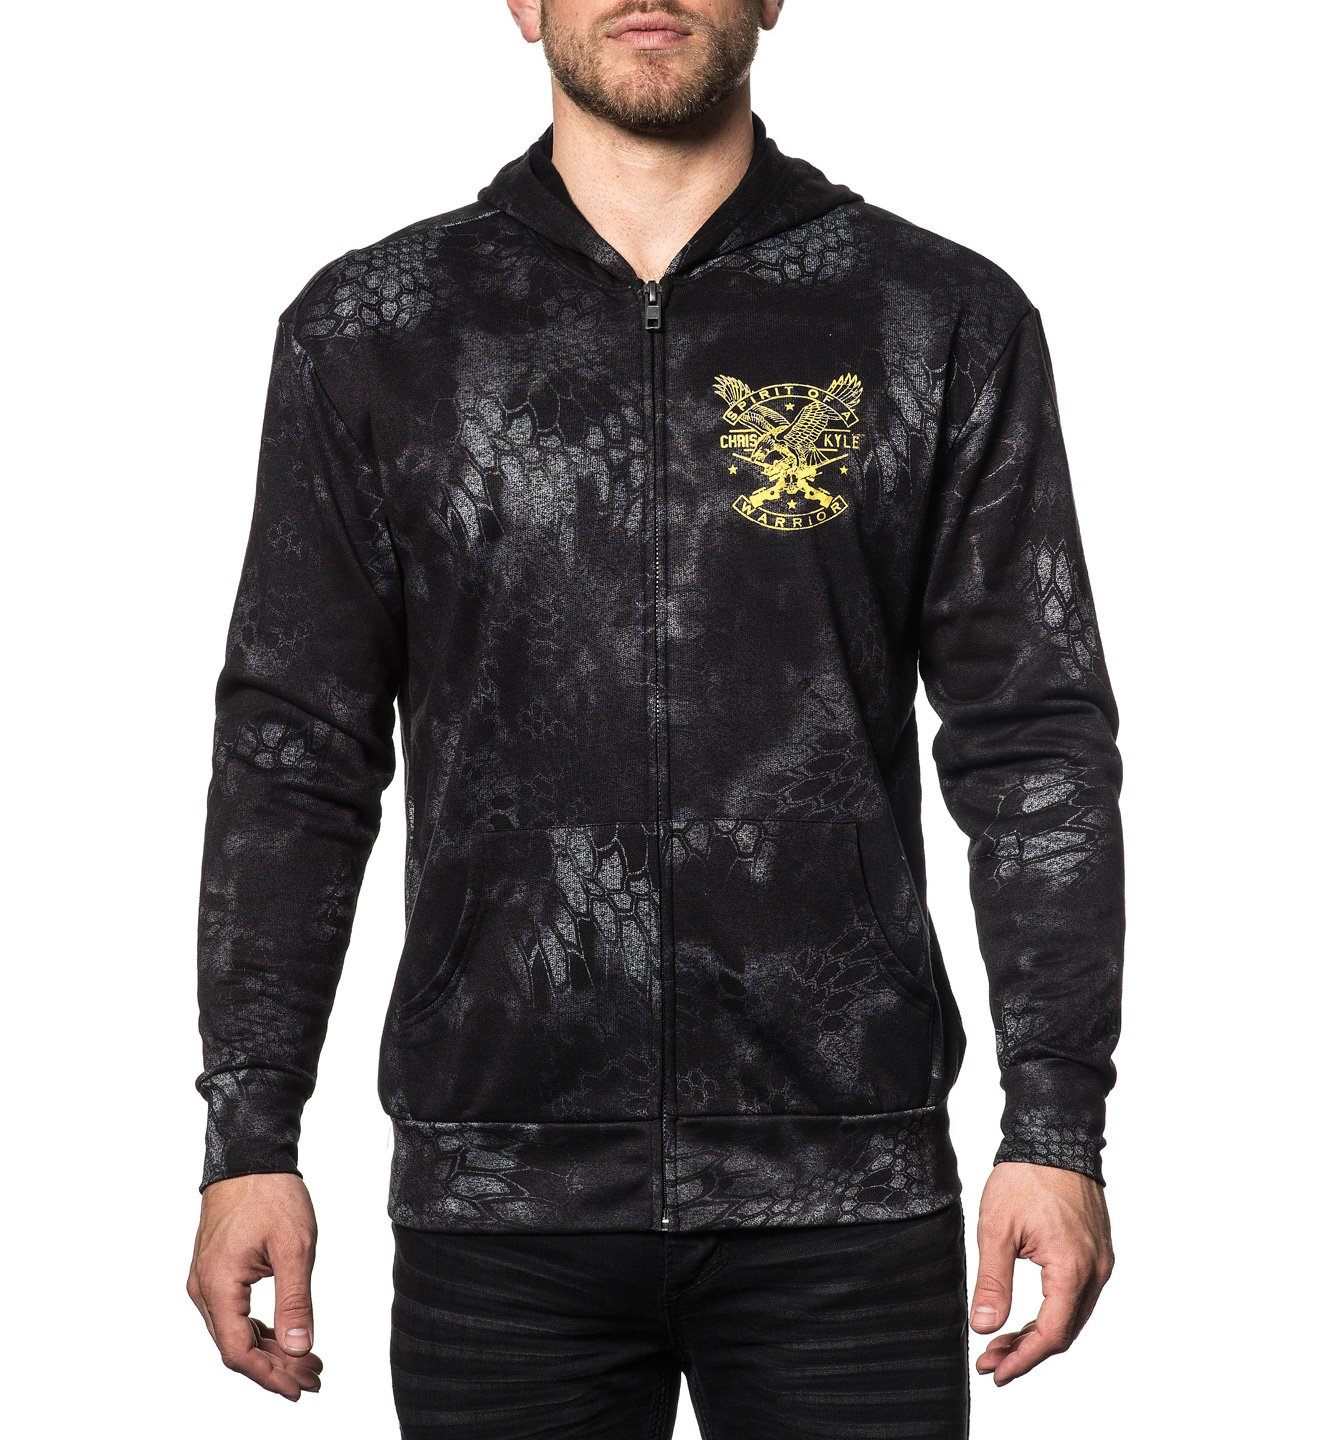 Ck Freedom - Mens Hooded Sweatshirts - Affliction Clothing